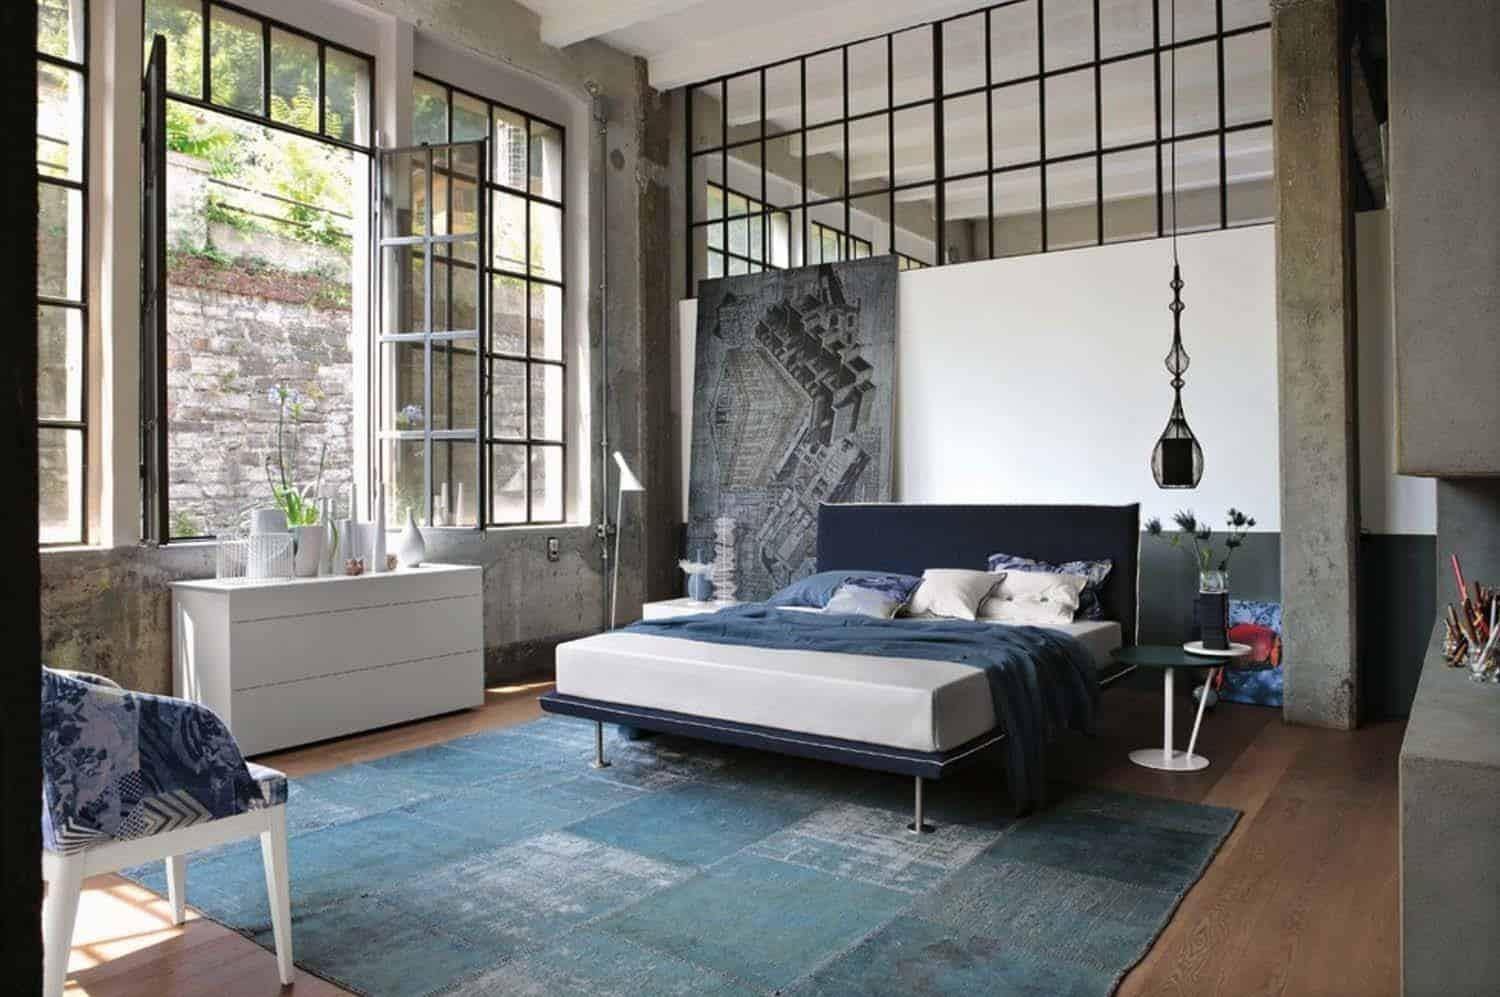 Industrial Style Bedroom Design Ideas-16-1 Kindesign